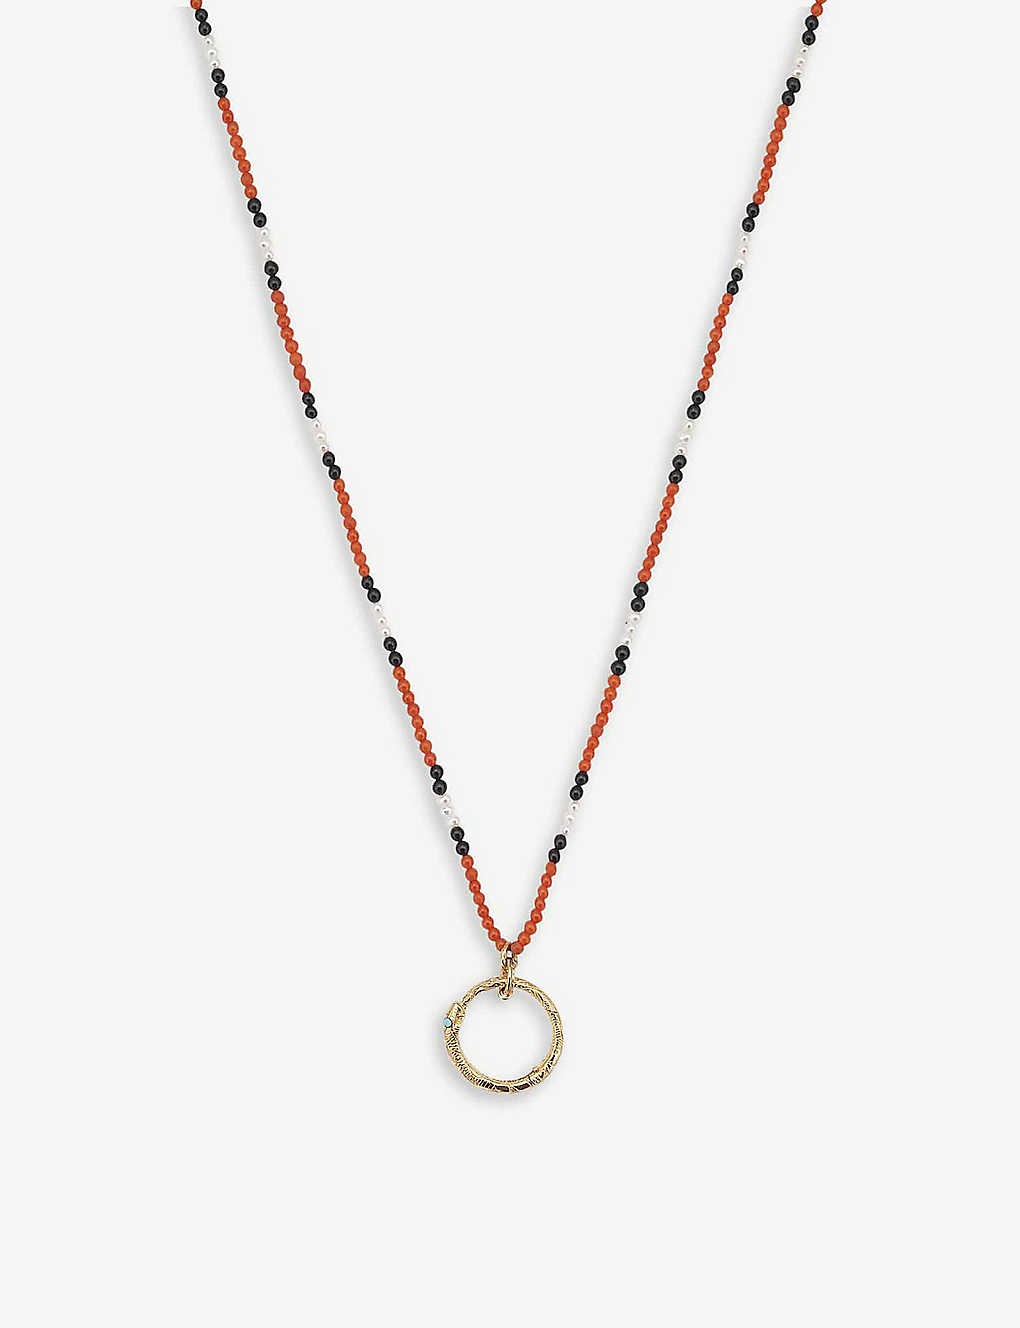 af19a8a40 Ouroboros 18ct yellow-gold, red coral, pearl and onyx necklace - Yellow gold  ...